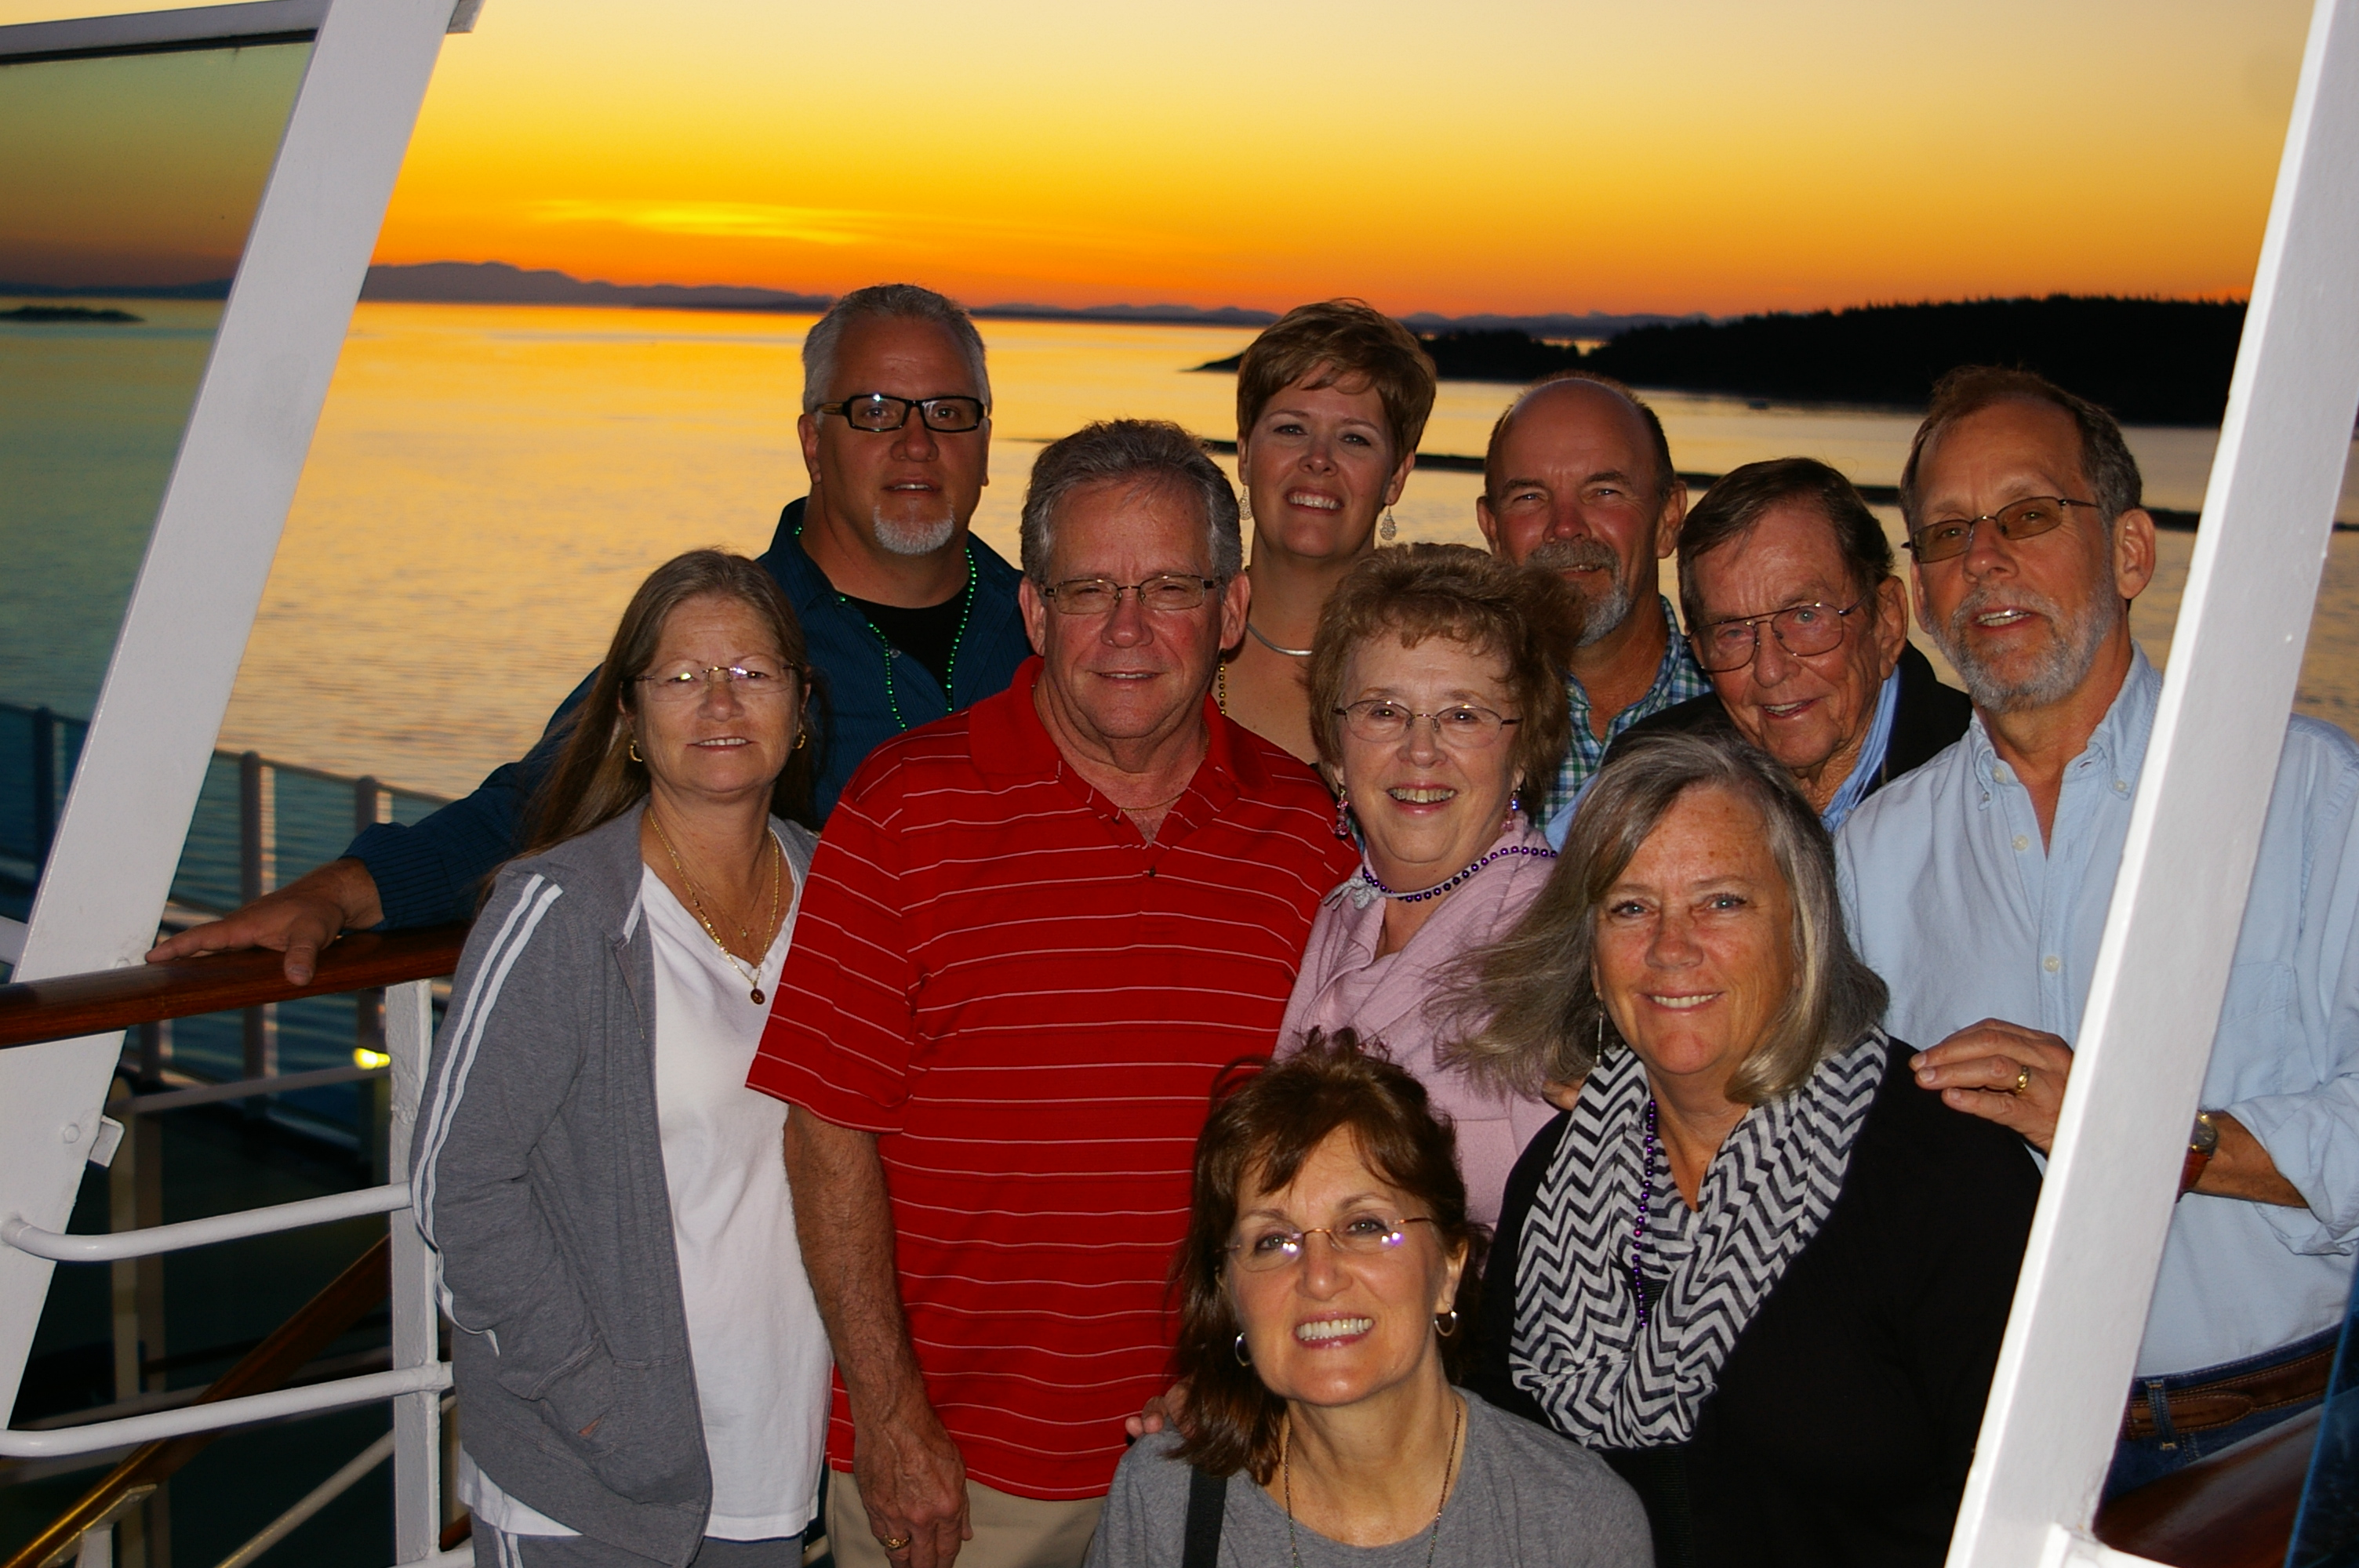 Alaska cruise with family, July 2014.